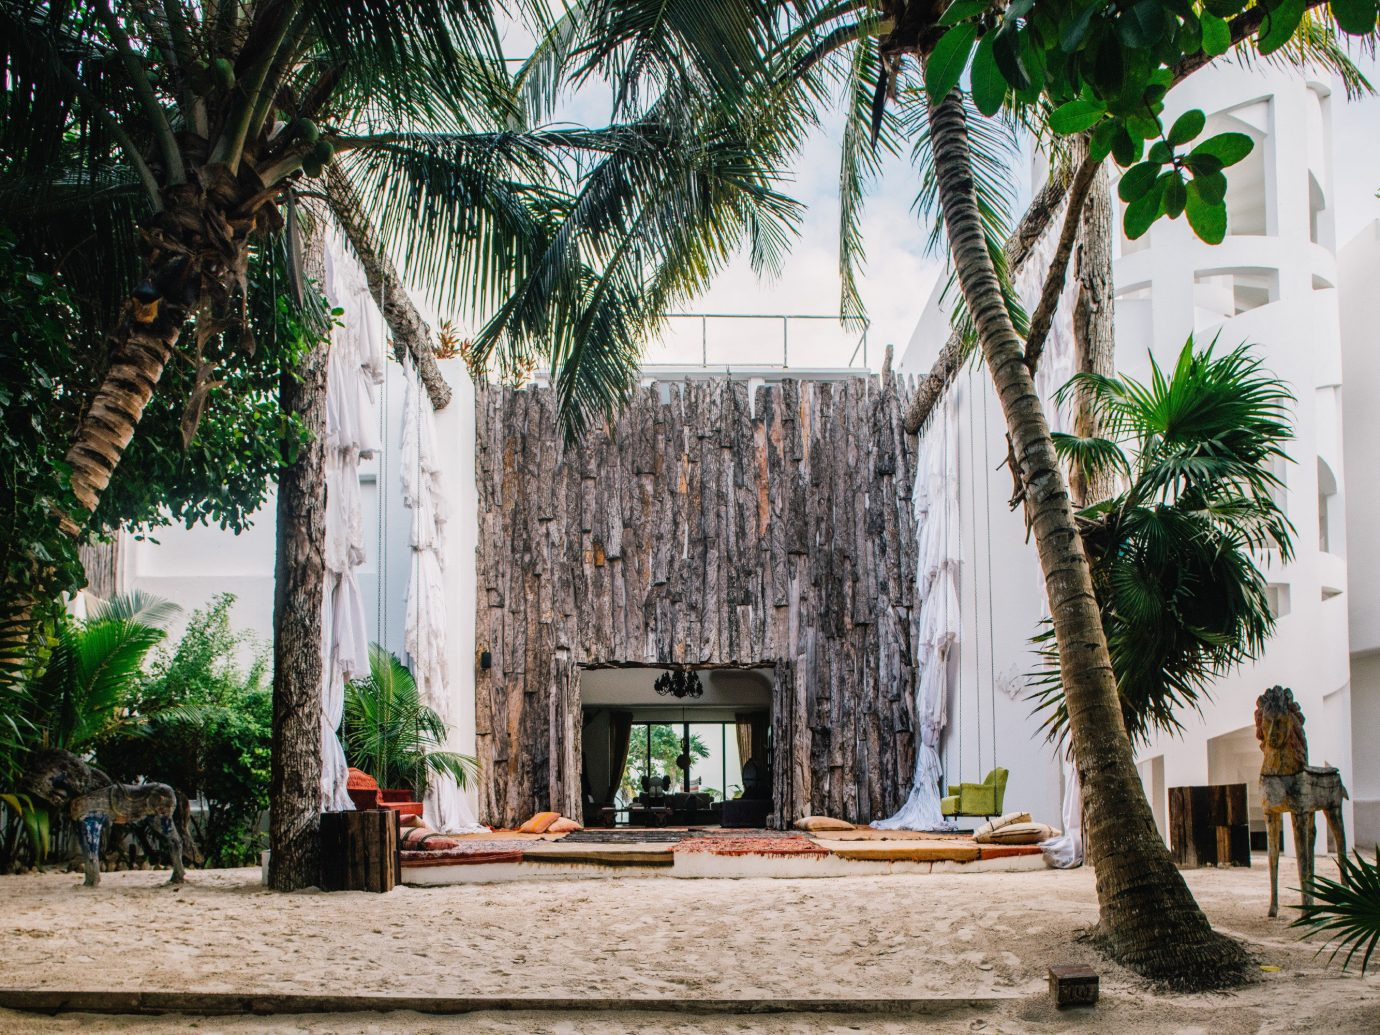 Boutique Hotels Hotels Mexico Tulum arecales palm tree tree plant tourist attraction hacienda building facade tourism